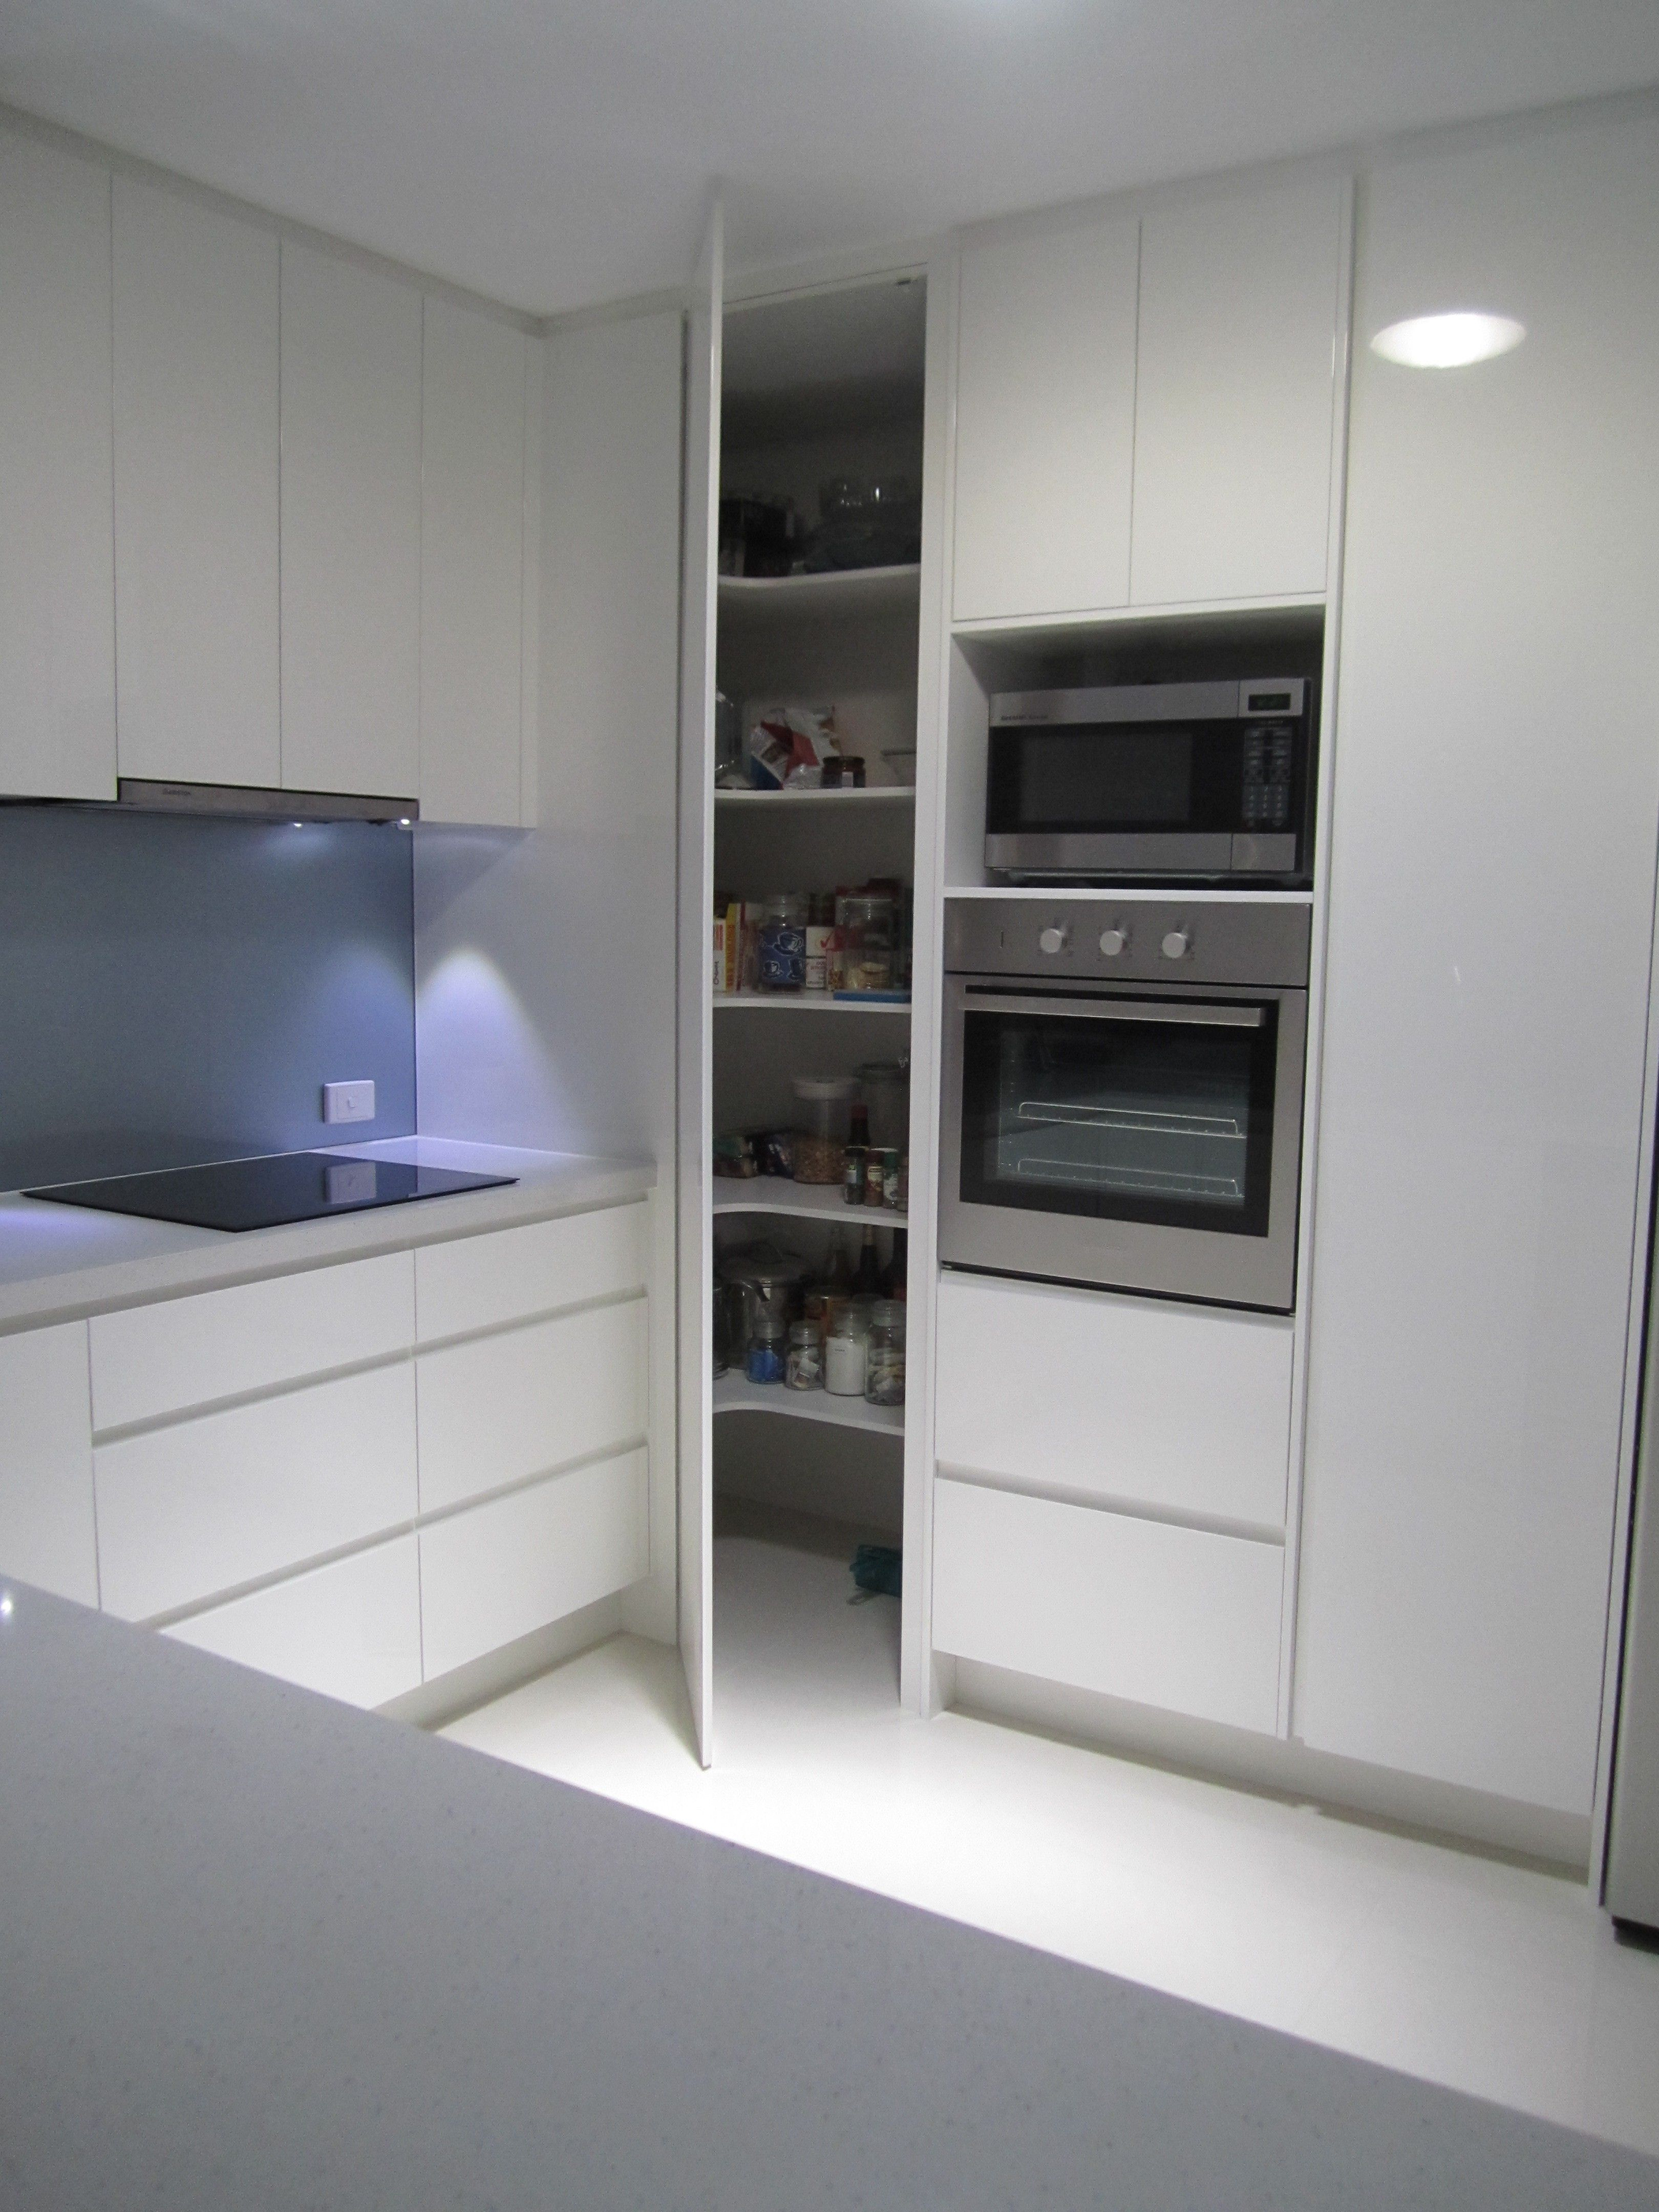 Kitchen Corner Cabinets For Sale Cabinet Solutions Ideas Simple Kitchens Dimensions In 2020 Modern Kitchen Cabinet Design Corner Kitchen Cabinet Corner Pantry Cabinet